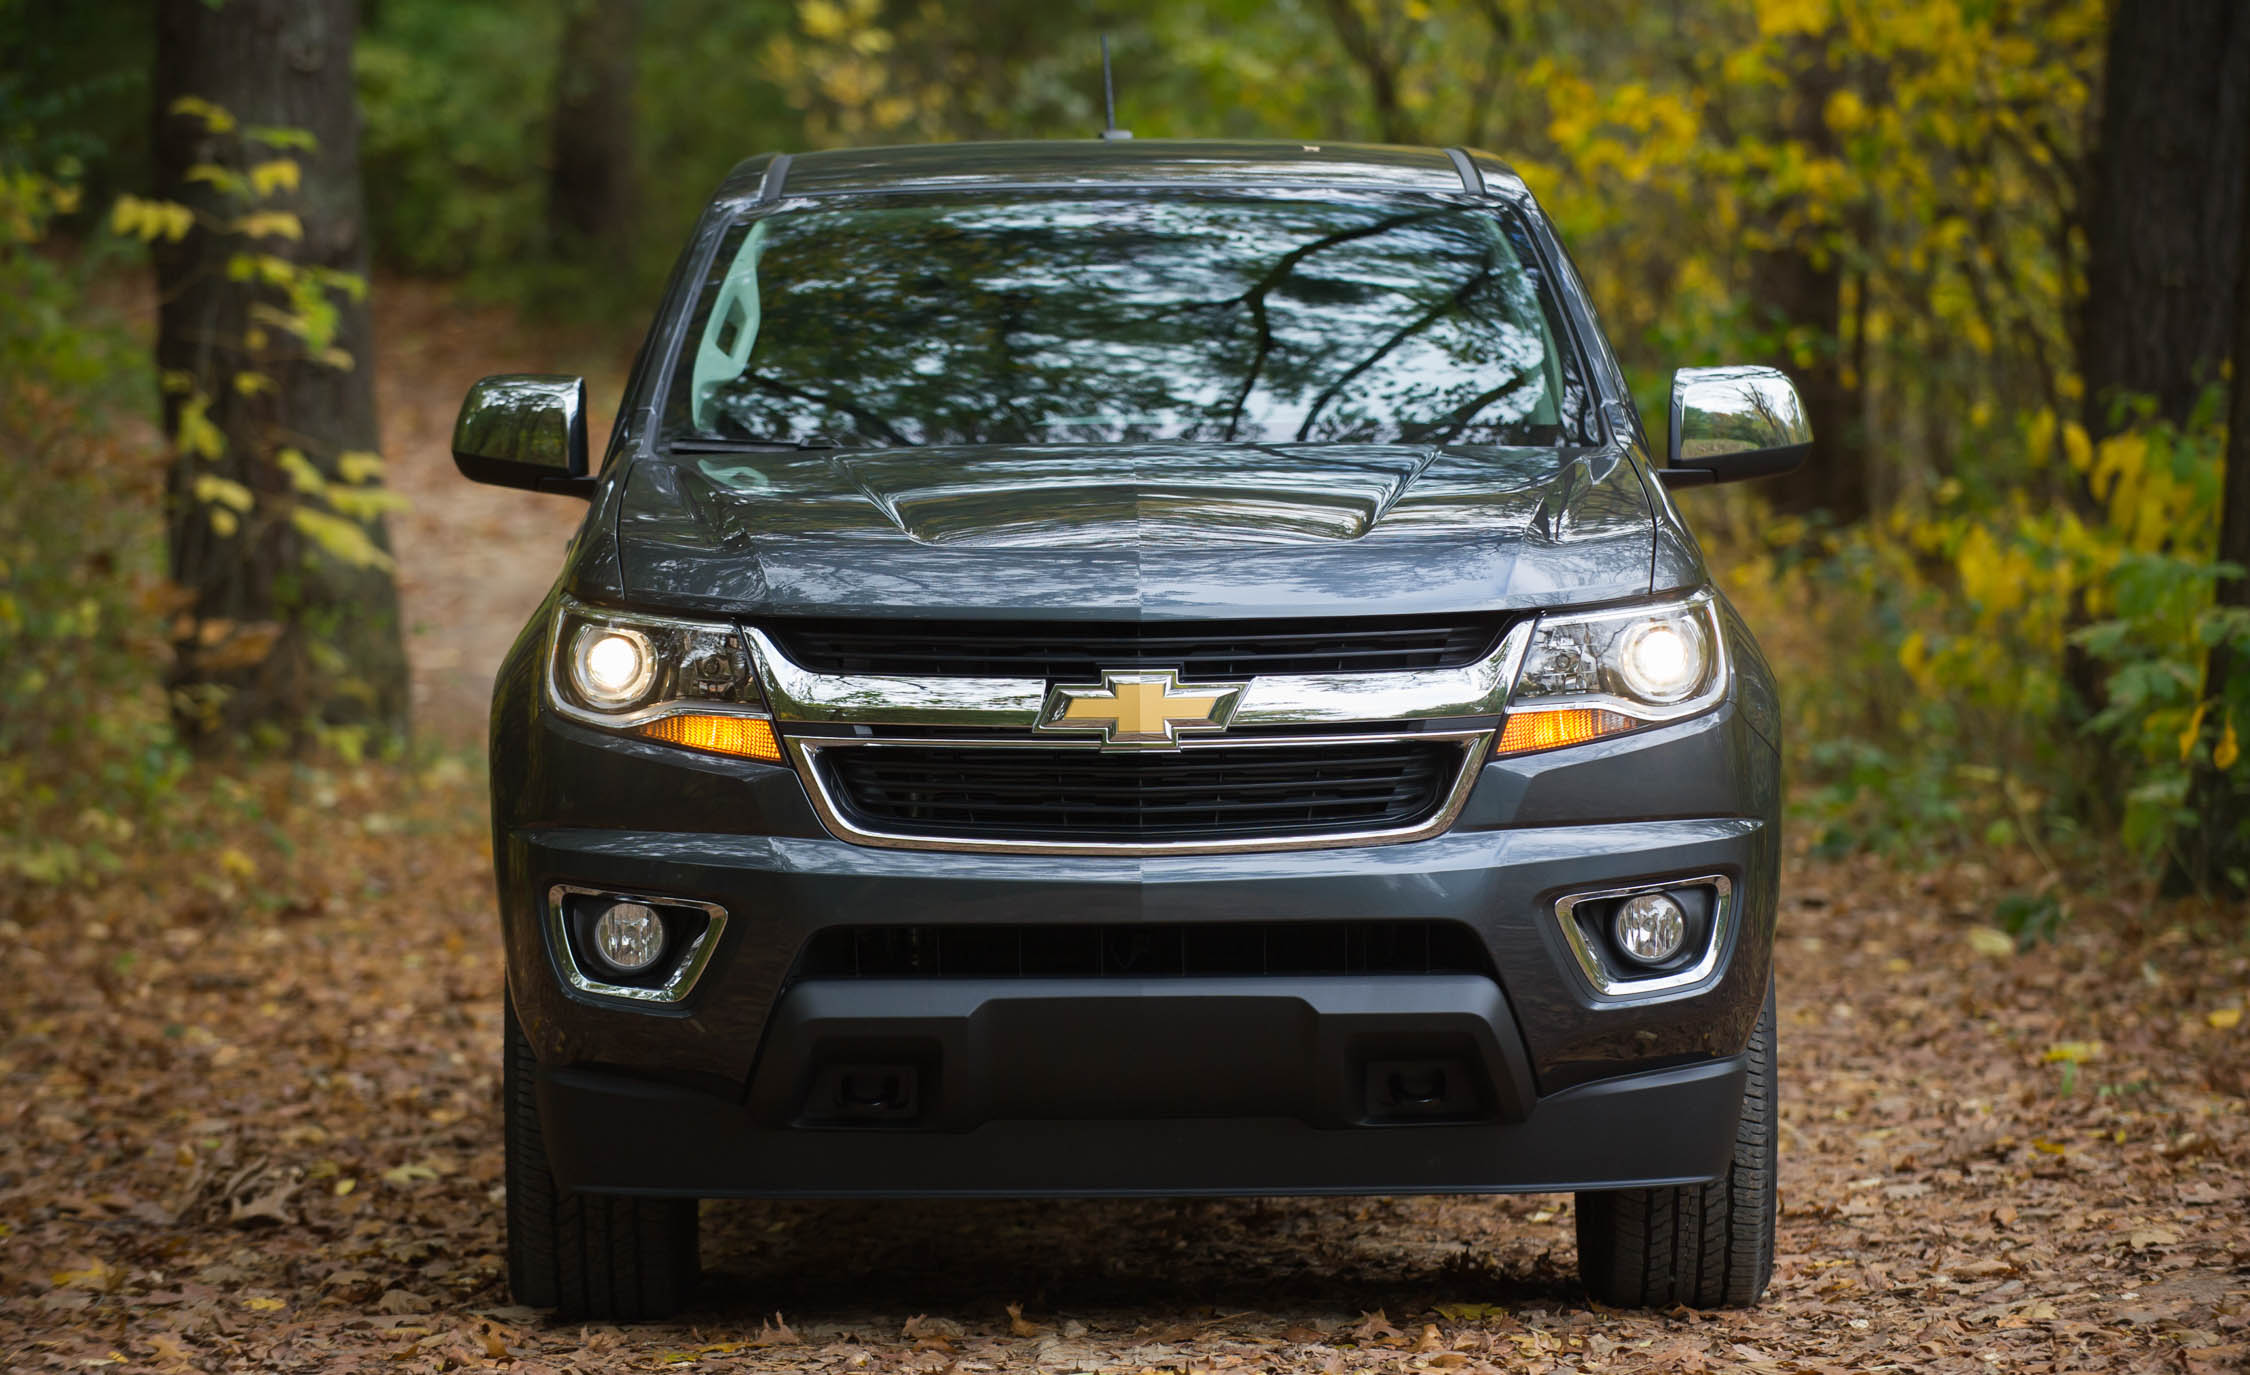 2017 Chevrolet Colorado Exterior Front (View 37 of 41)